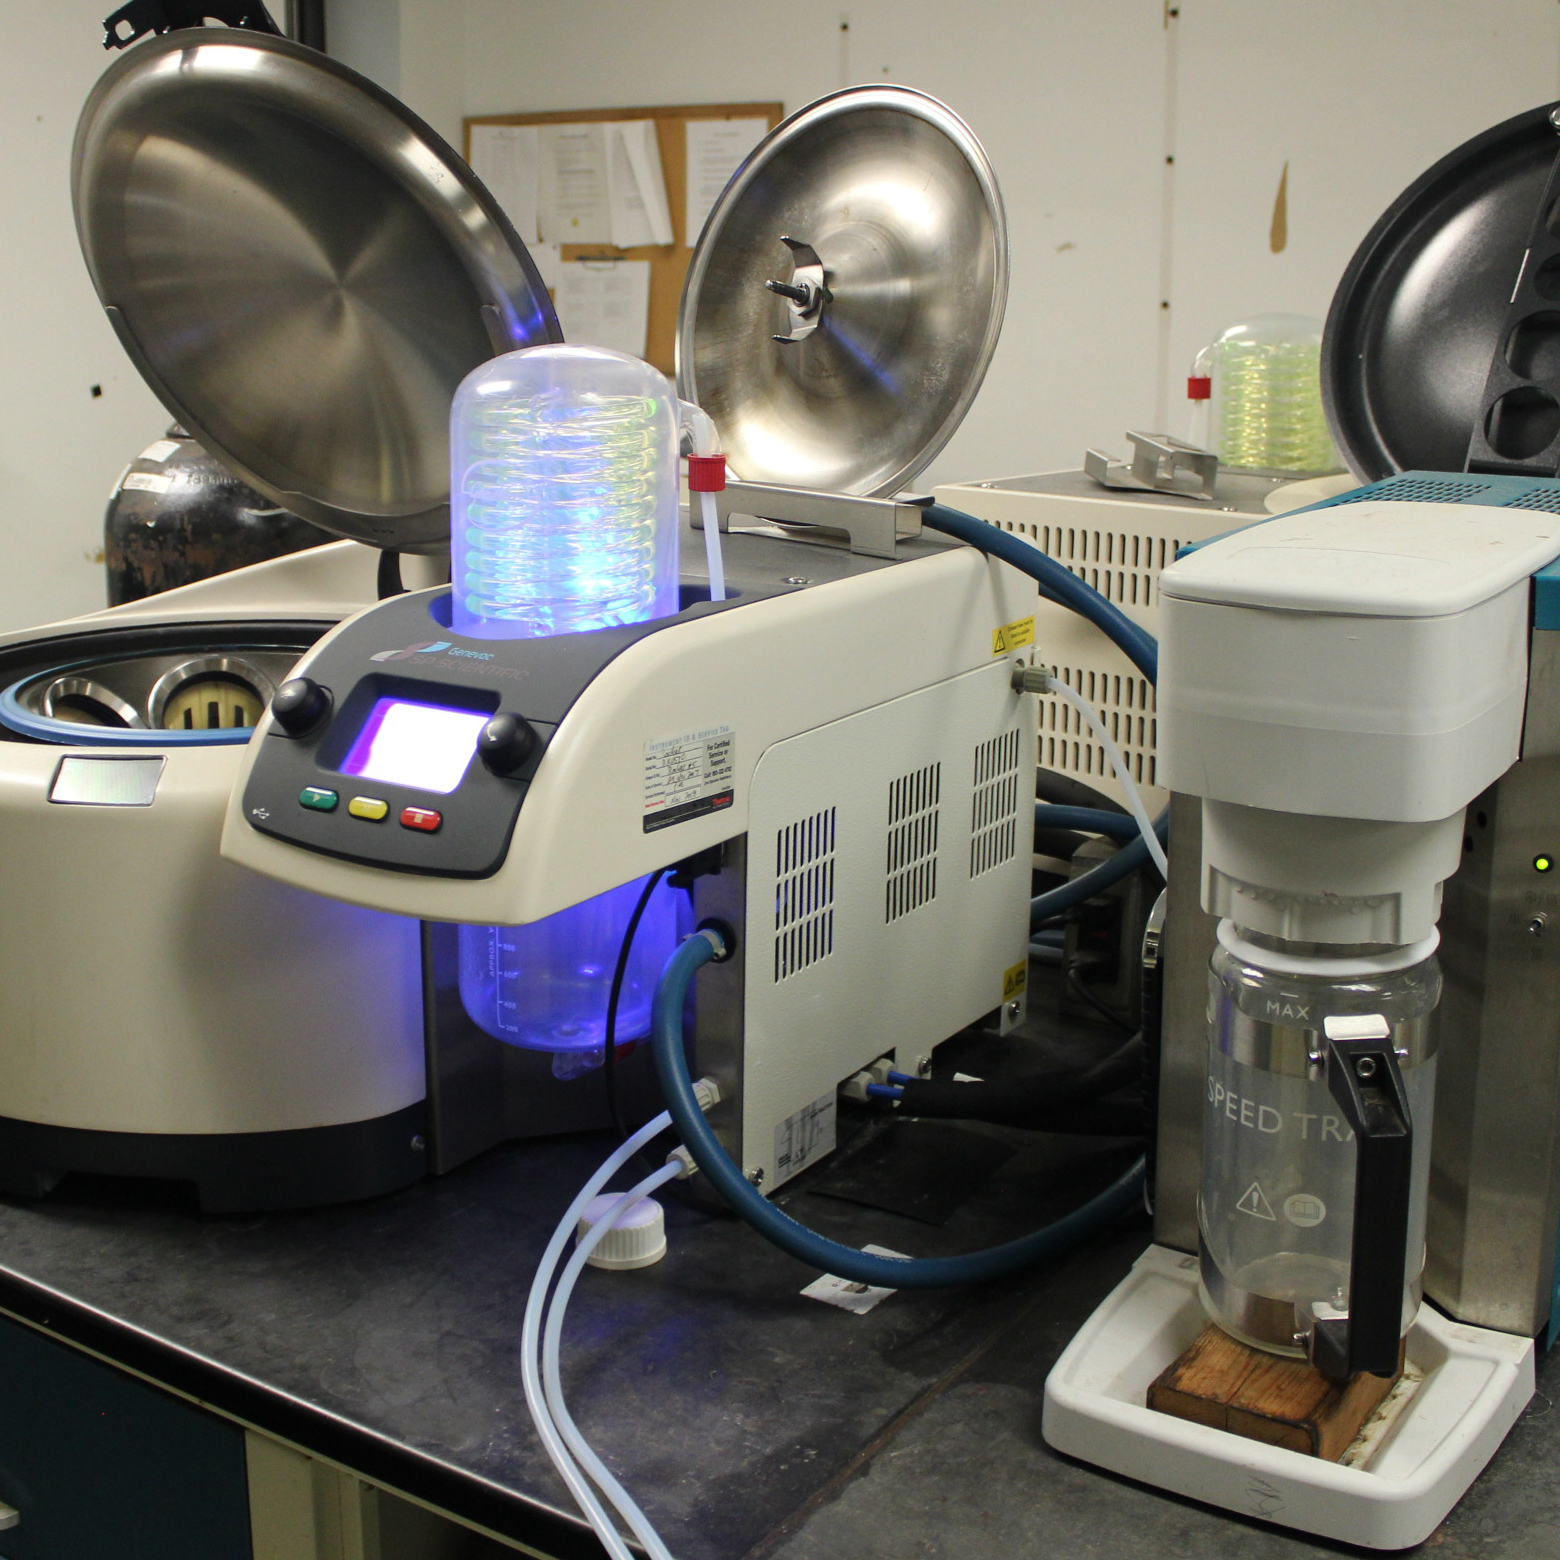 SP Scientific Rocket Synergy Evaporator with Julabo FL 601 Circulator and miVac Speed Trap Image